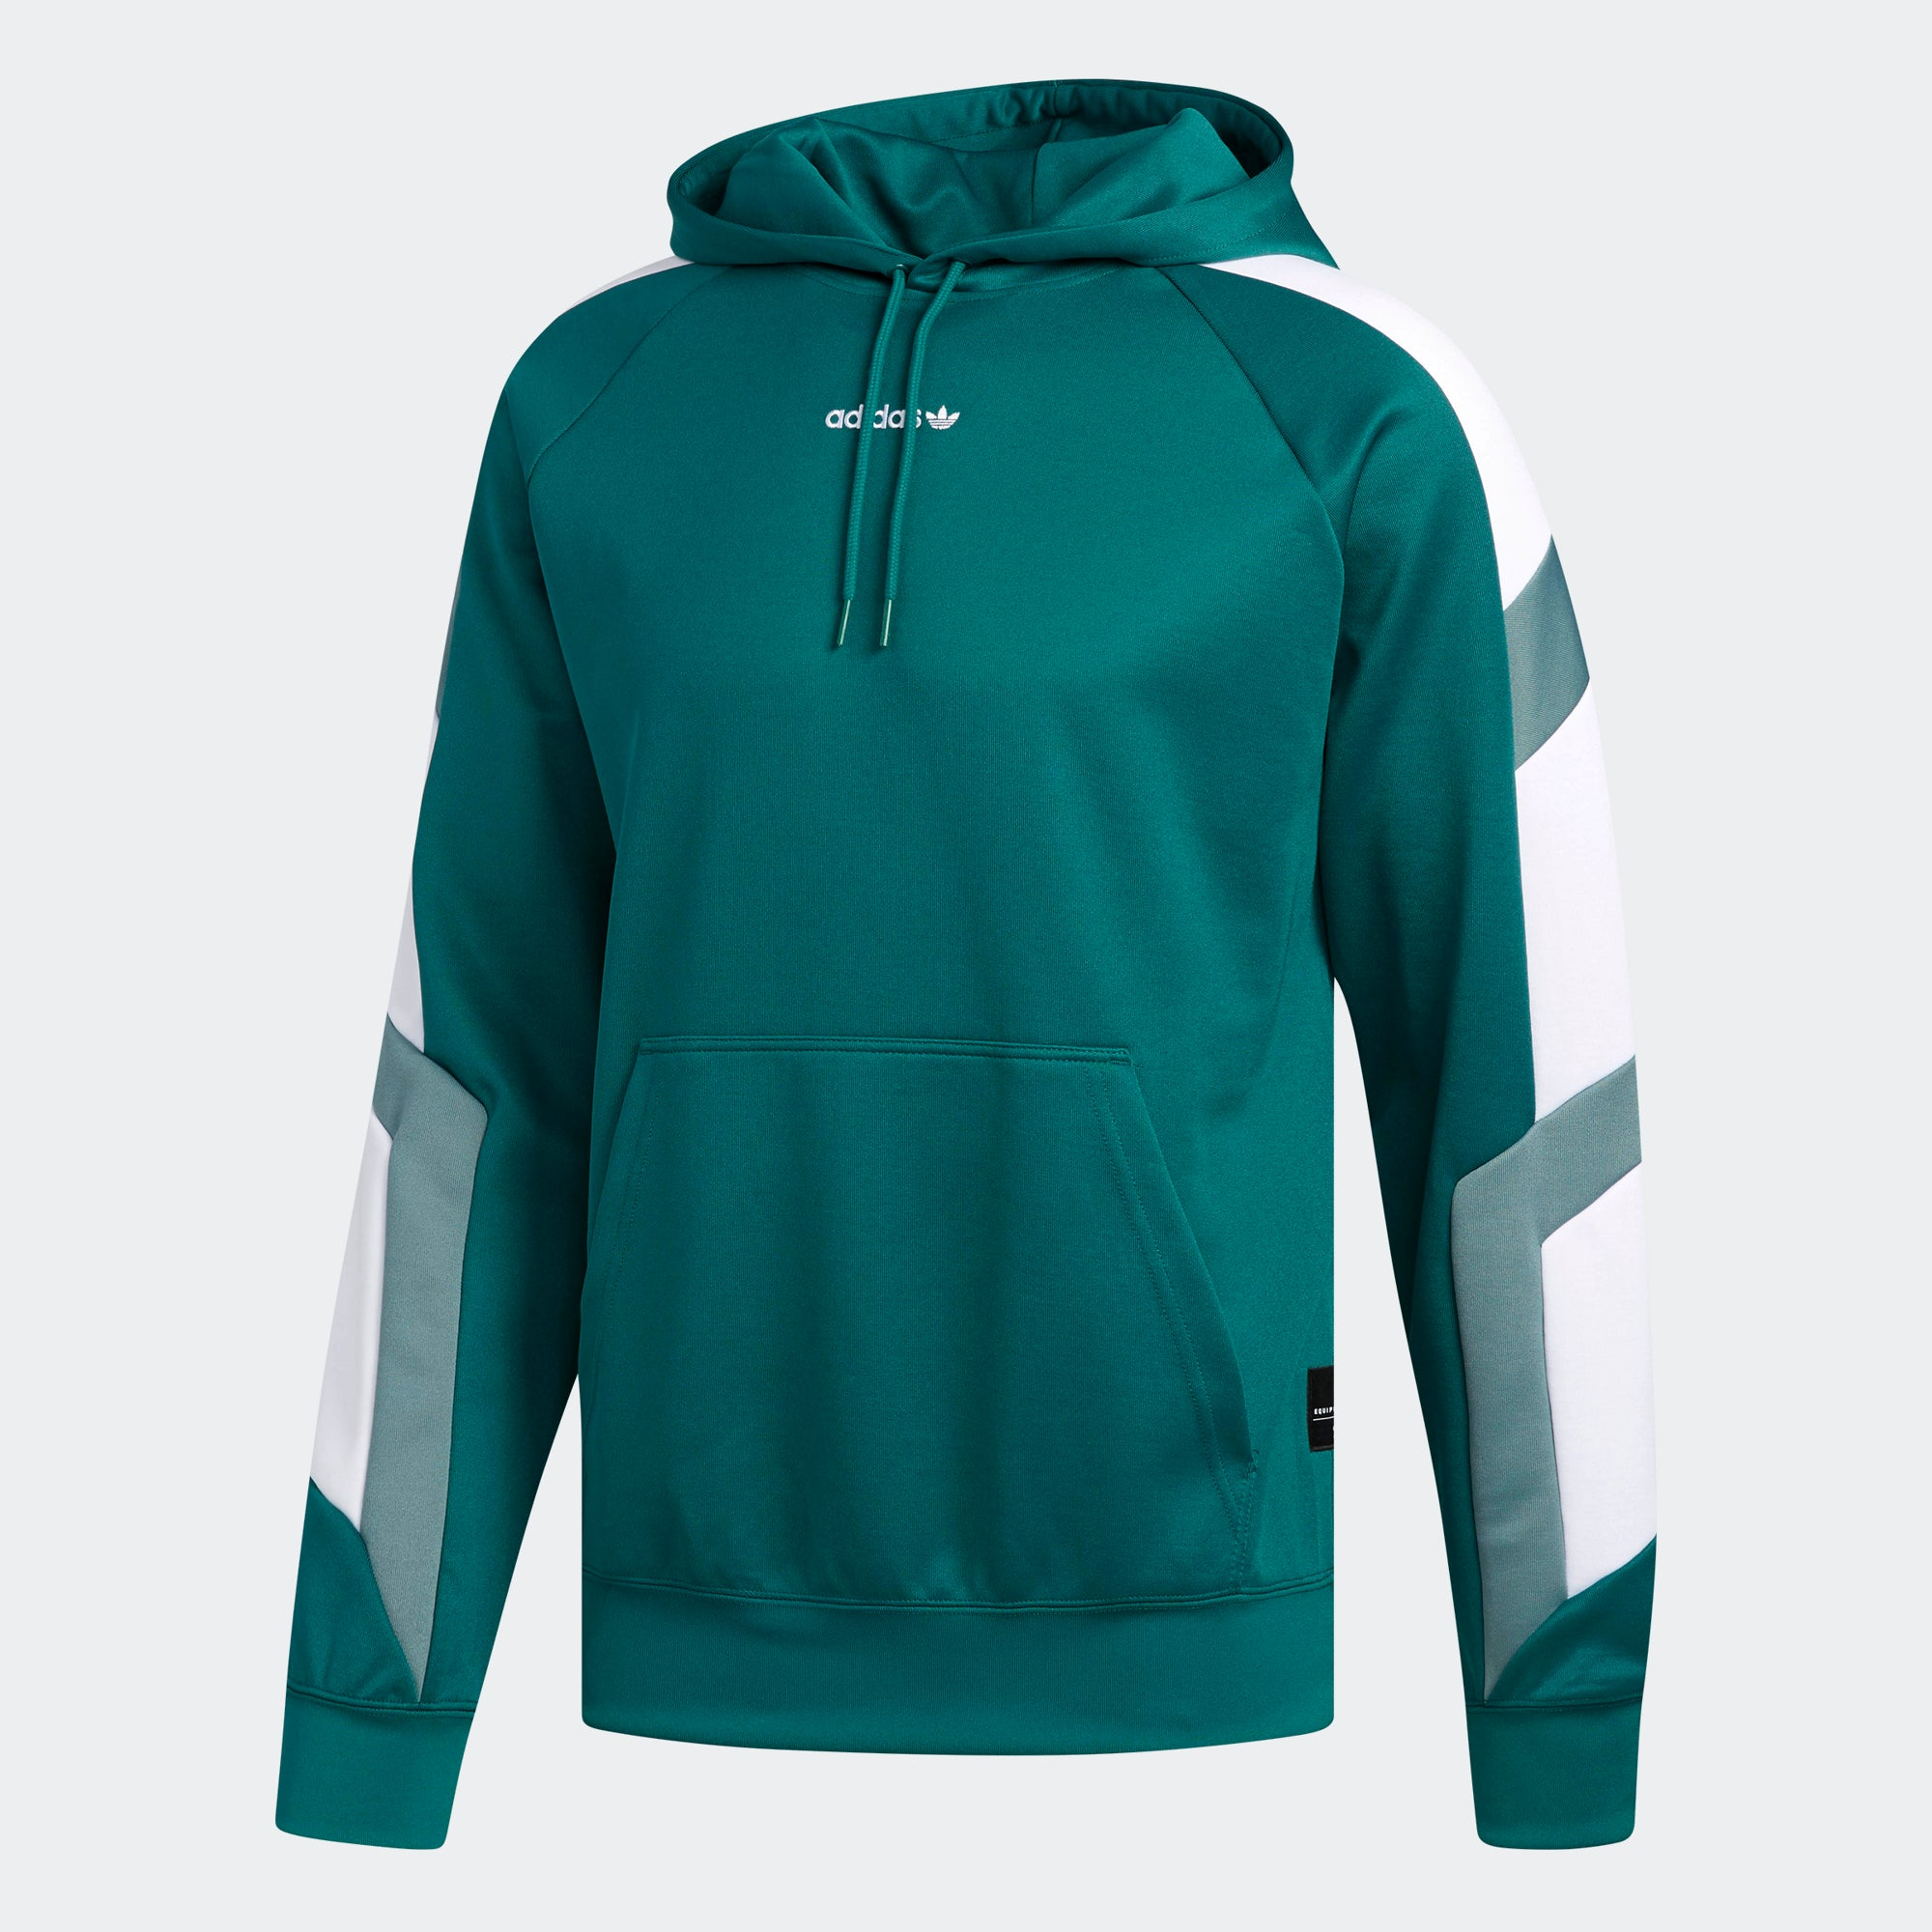 253bb8fbcf25 Men s adidas Originals EQT Block Hoodie Noble Green